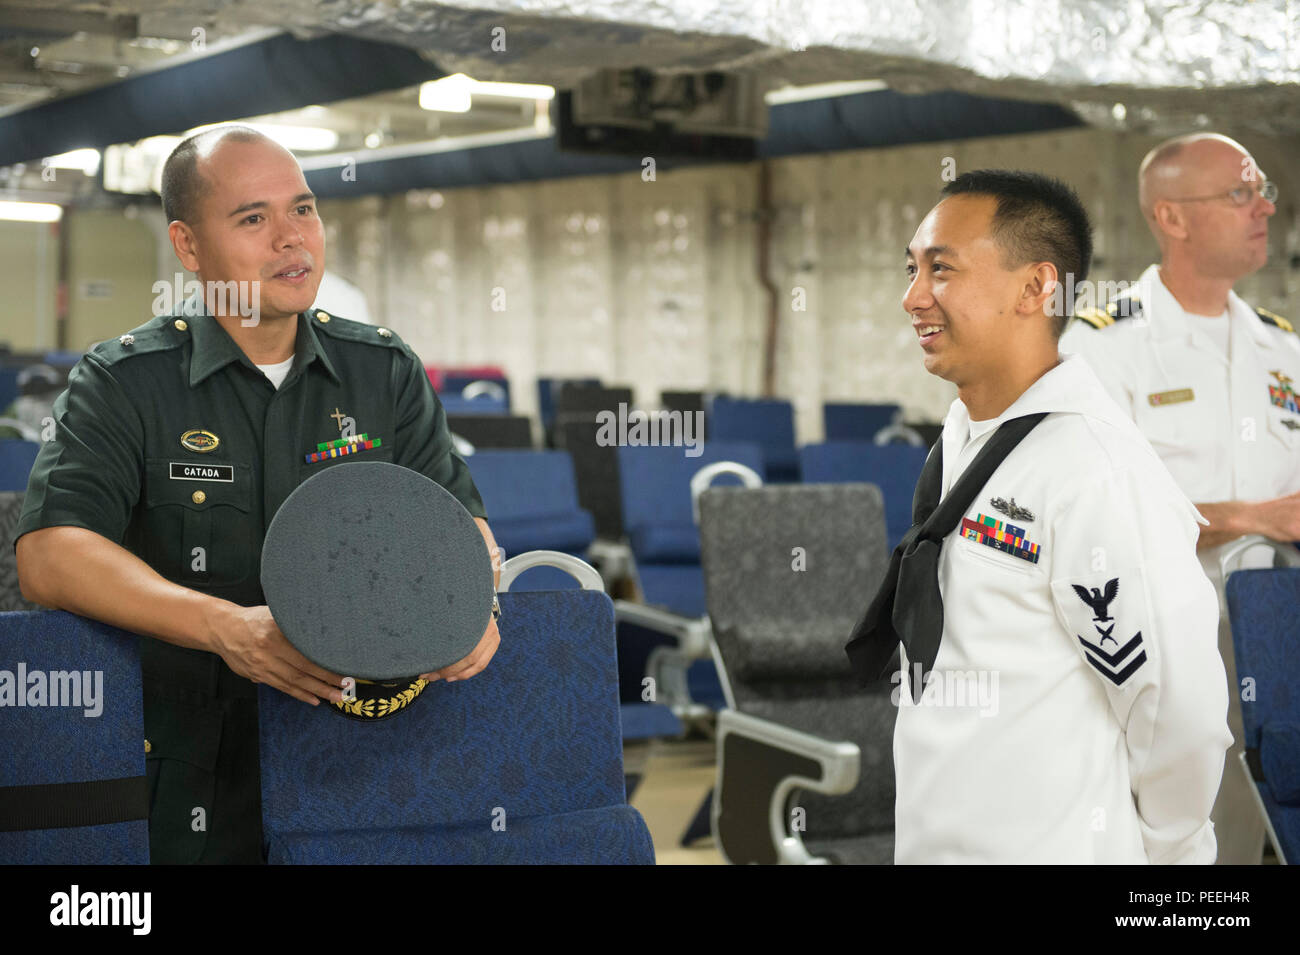 150814-N-MK341-009 SAN FERNANDO CITY, Philippines (August 14, 2015) – Yeoman 2nd Class Travis Aquino (right) speaks to Philippine Navy Chaplain Maj. Apolonio Catada during a closing reception aboard the Military Sealift Command joint high speed vessel USNS Millinocket (JHSV 3) Aug. 14. Millinocket and embarked Task Force Forager are serving as the secondary platform for Pacific Partnership, led by an expeditionary command element from the Navy's 30th Naval Construction Regiment (30 NCR) from Port Hueneme, Calif. Now in its 10th iteration, Pacific Partnership is the largest annual multilateral  - Stock Image